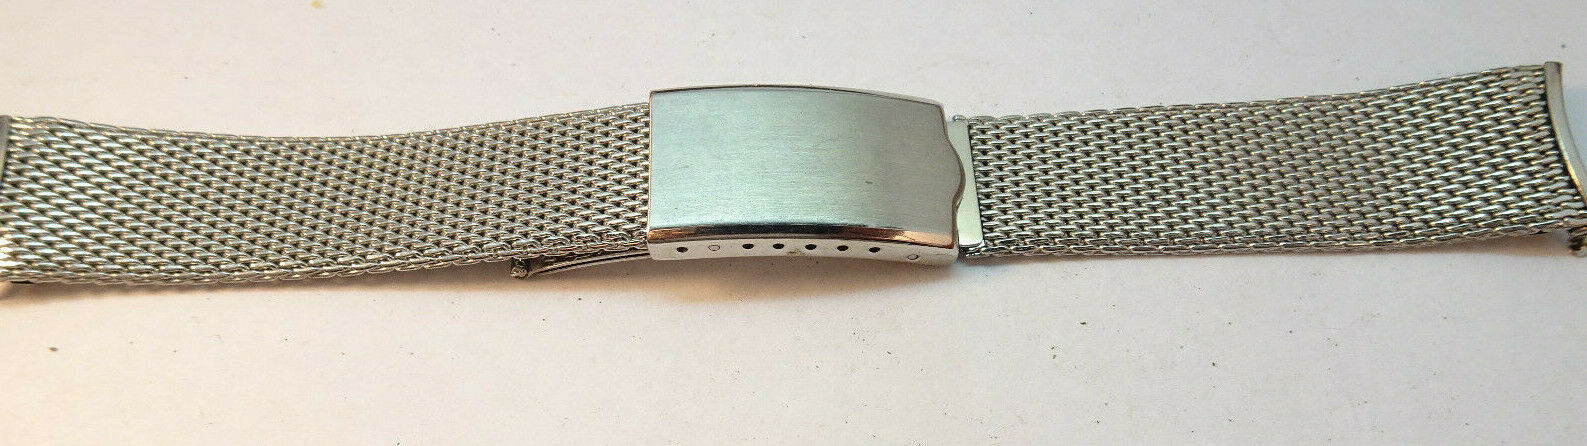 Primary image for VINTAGE HARD MESH STYLE CHAMPION MADE IN USA STAINLESS STEEL WATCH BAND 18mm